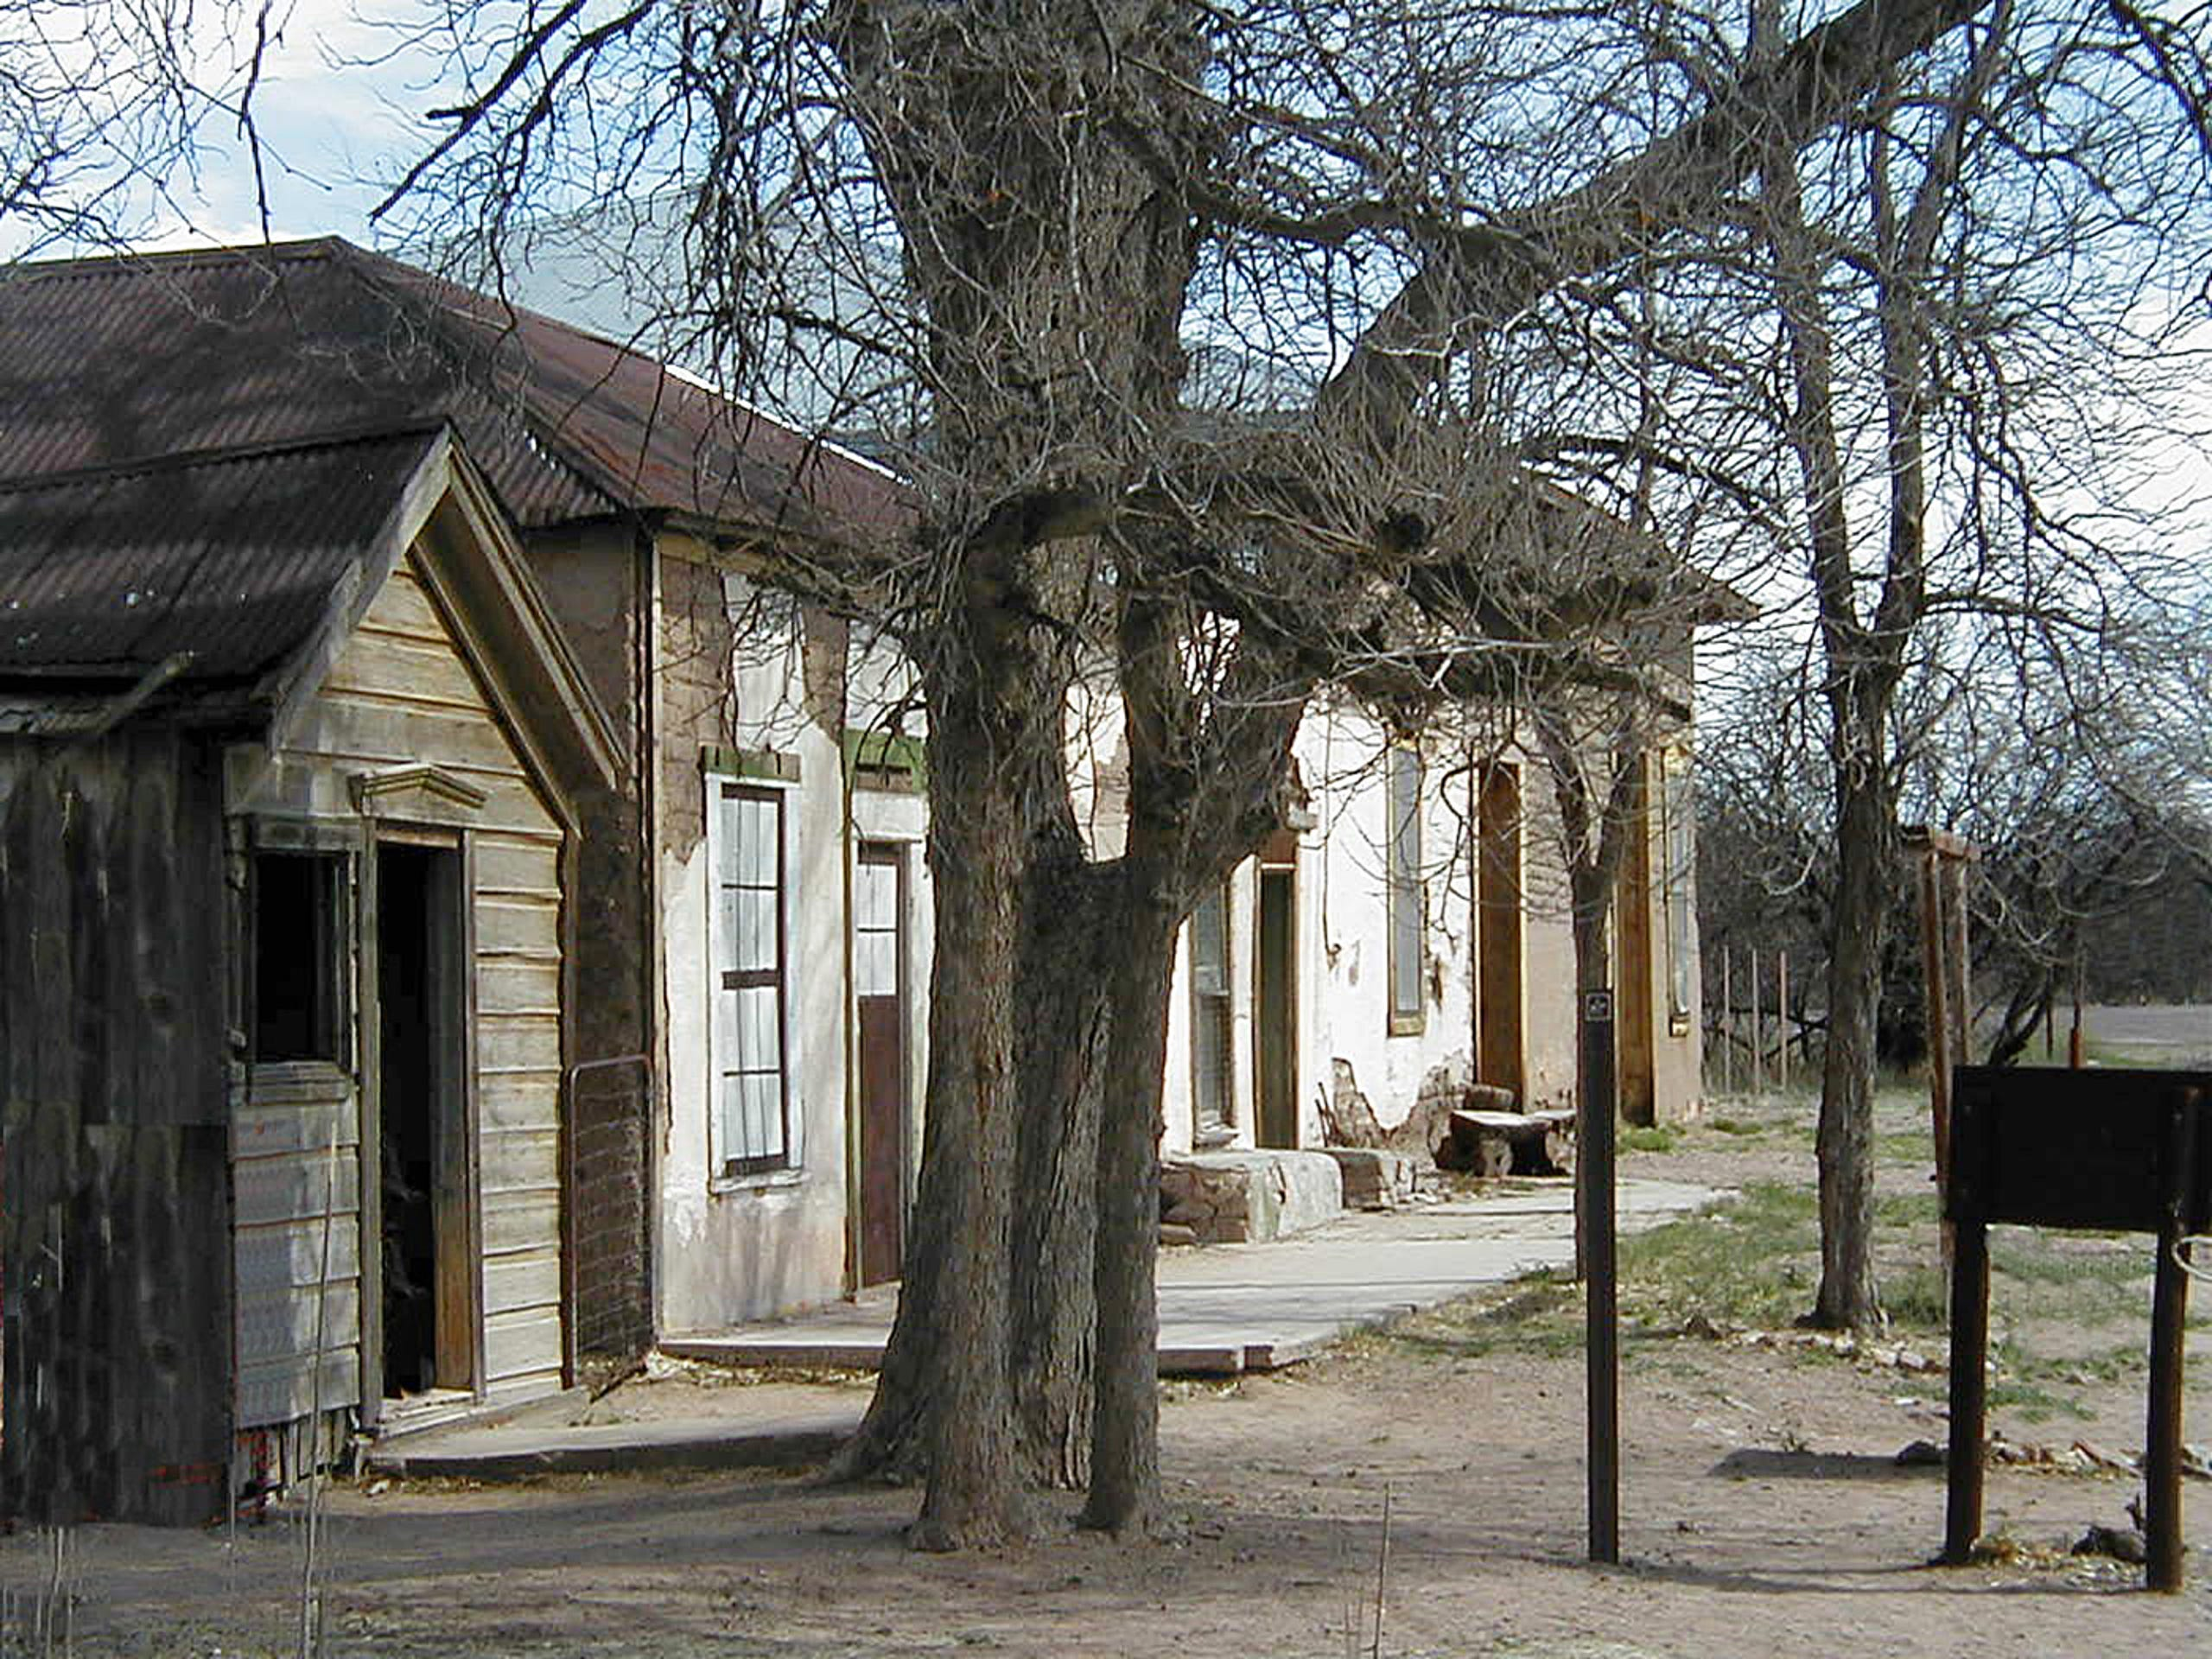 The ghost town of Fairbank includes a half dozen structures including a large mercantile building, a schoolhouse and a few homes, huddled in riverside mesquite groves.